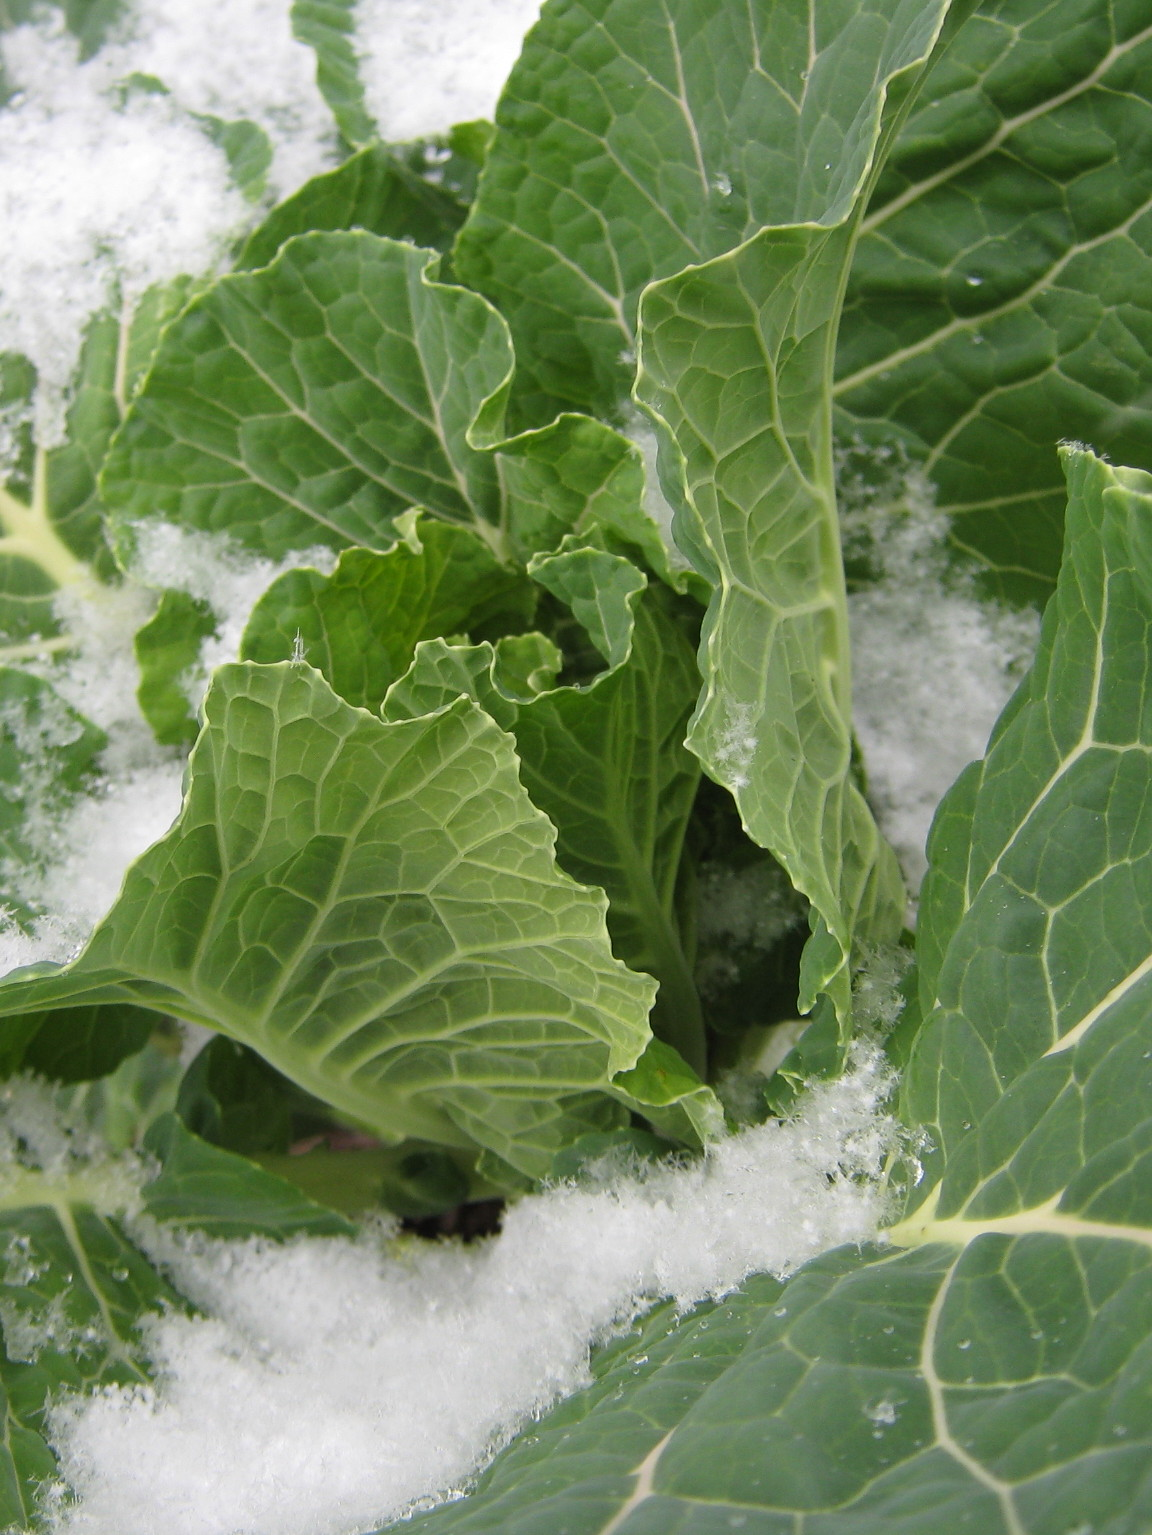 Collard greens in a dusting of snow